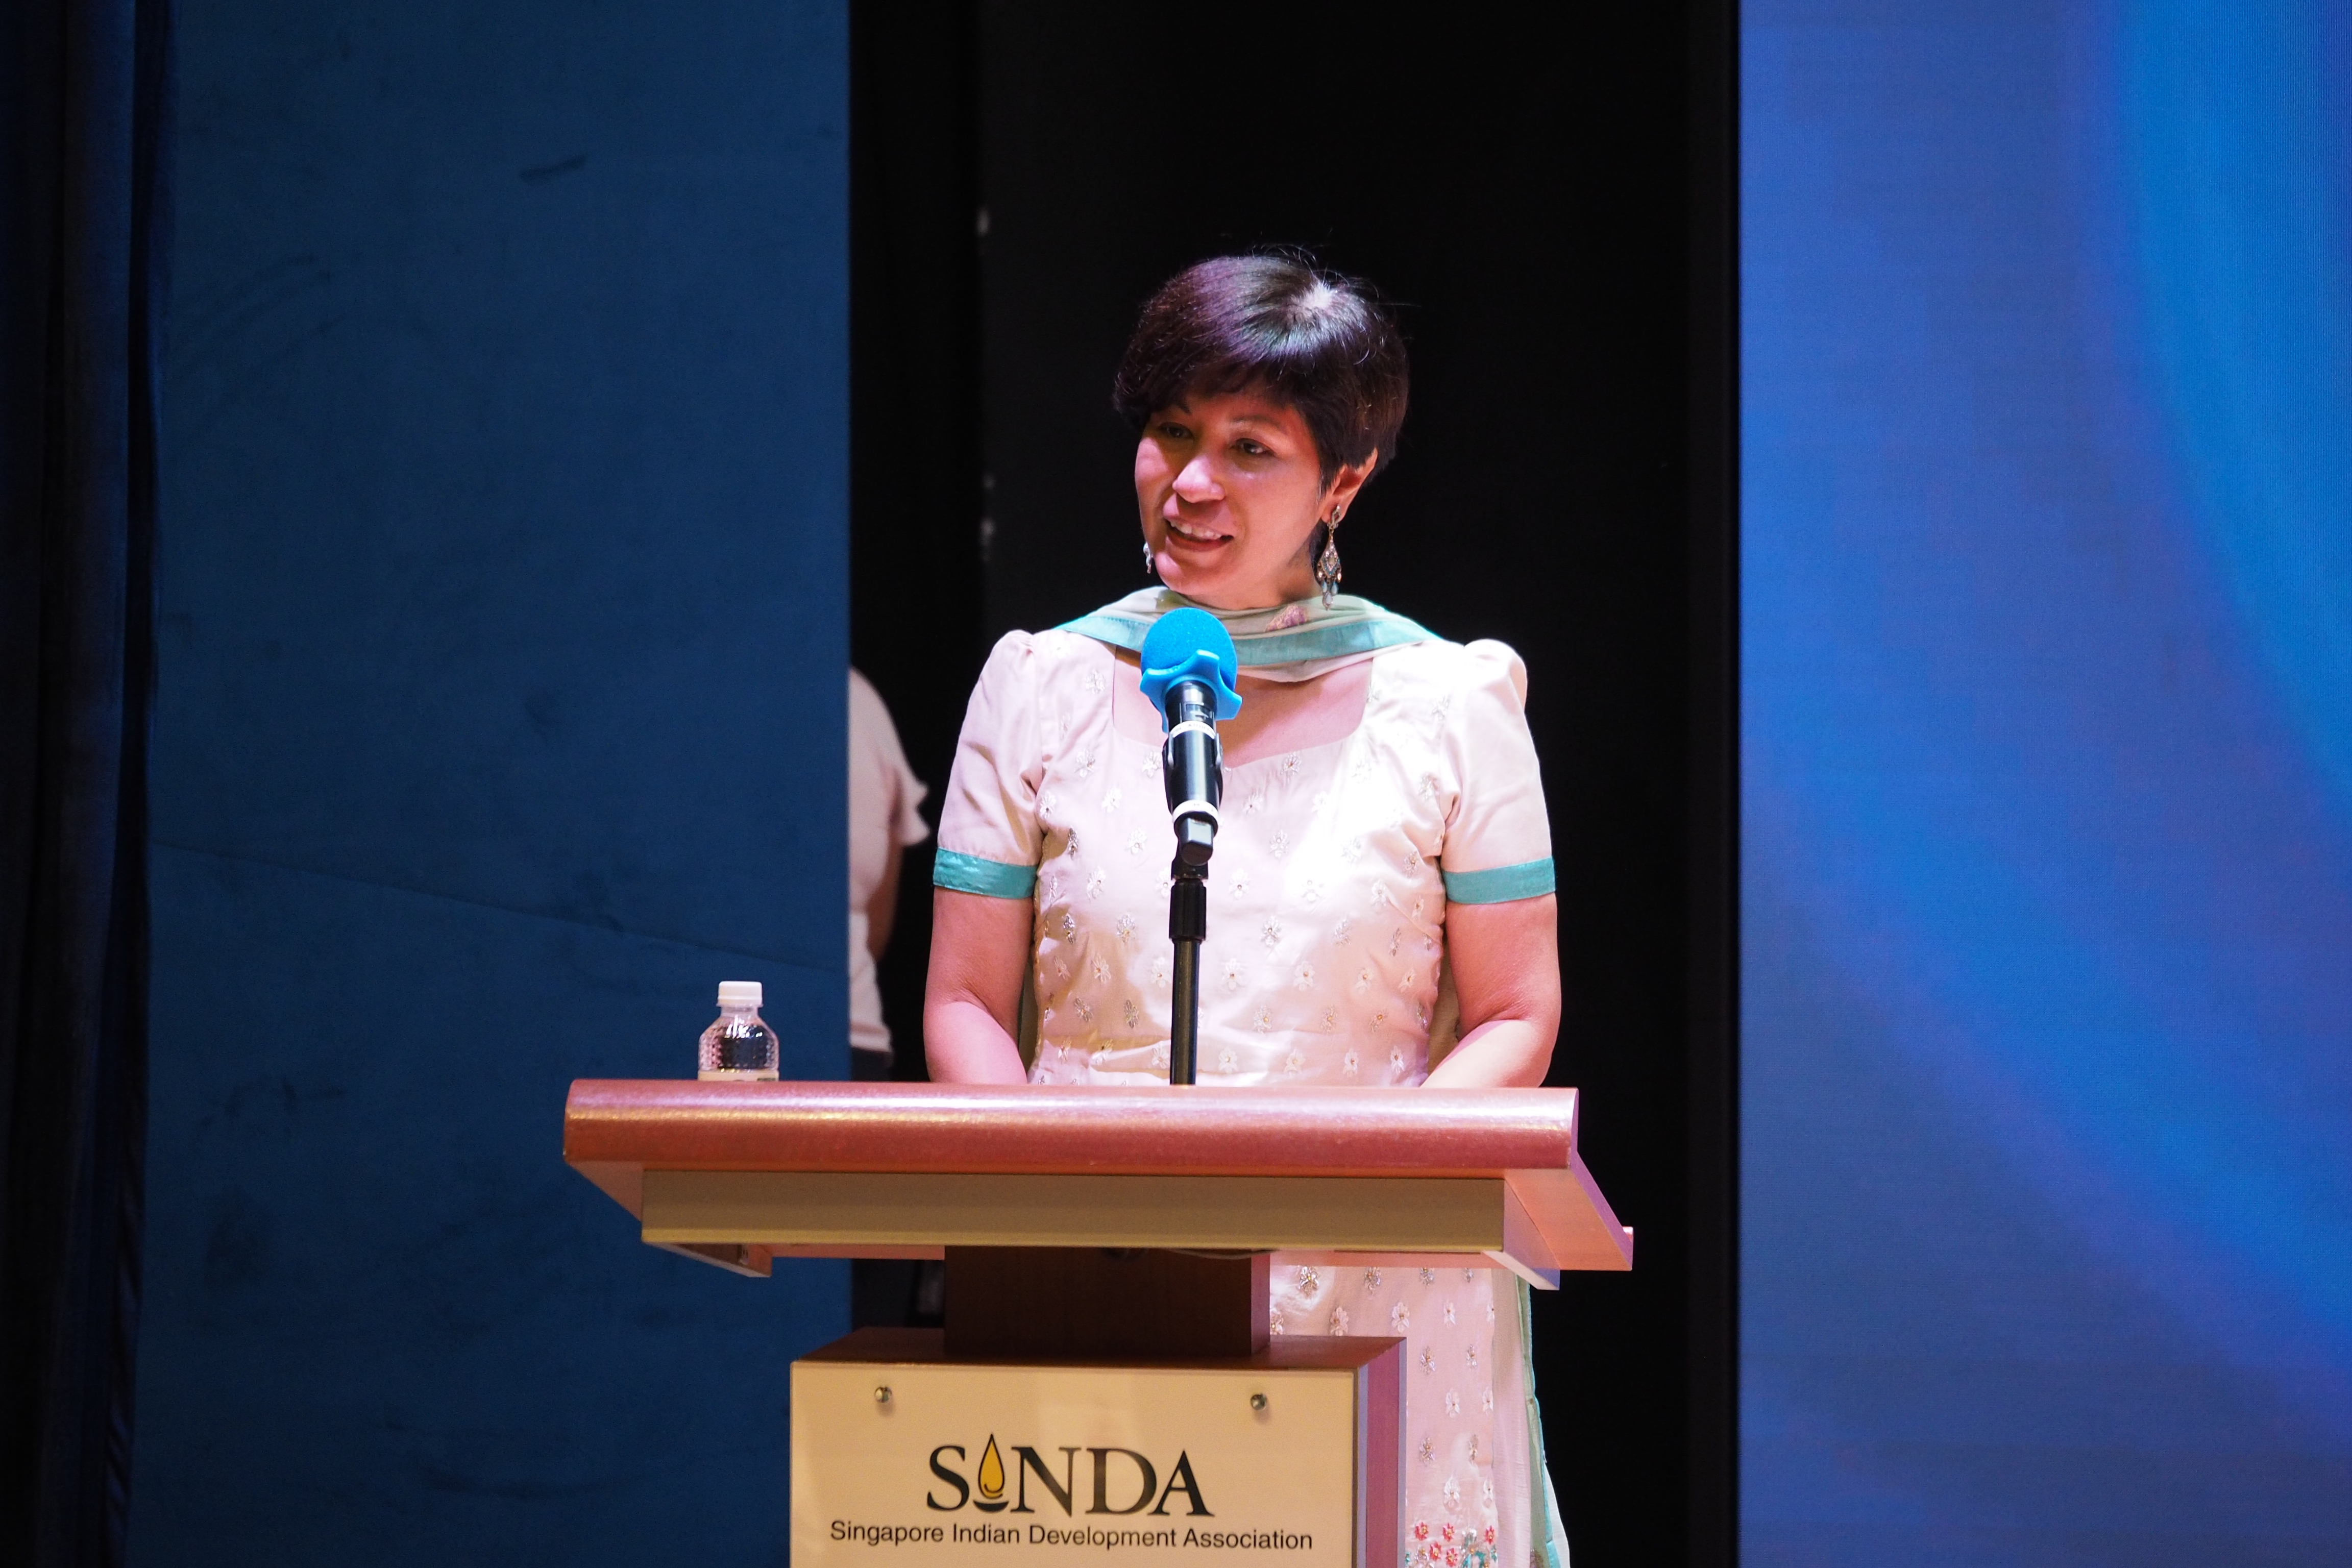 Second Minister for Finance and National Development and SINDA president Indranee Rajah